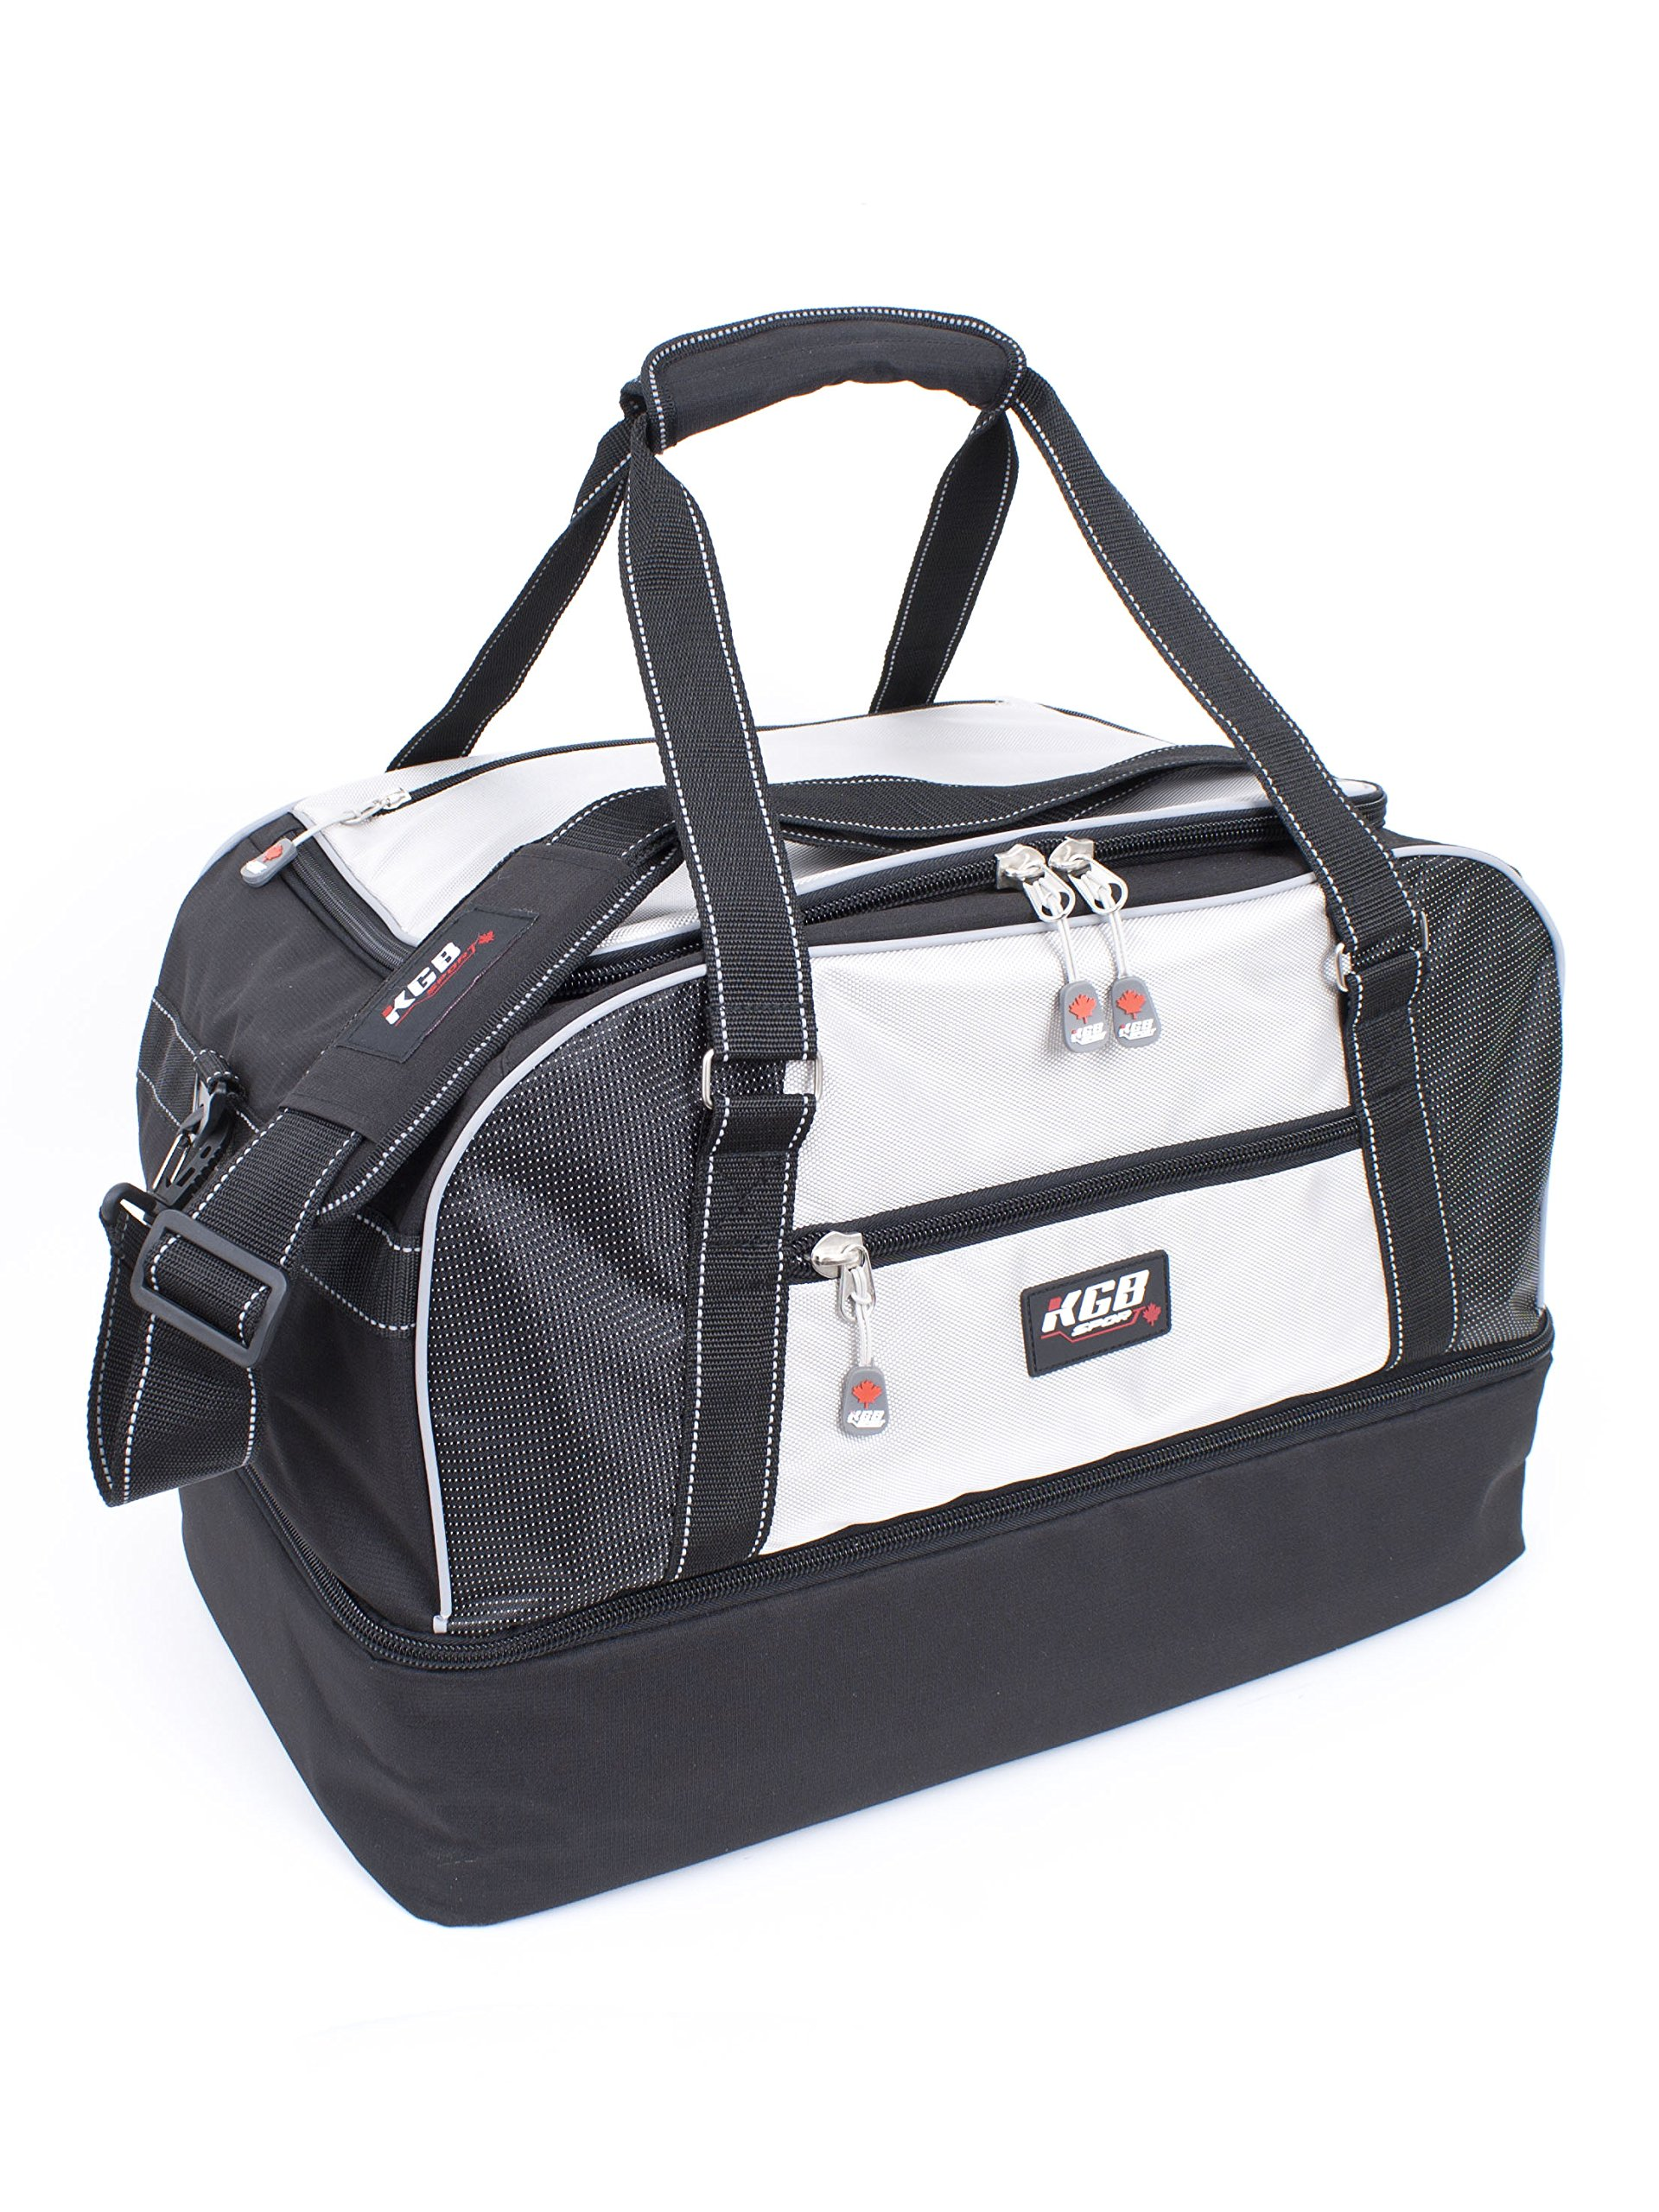 KGB Sport Drop Bottom Boots Duffle, Silver, One Size